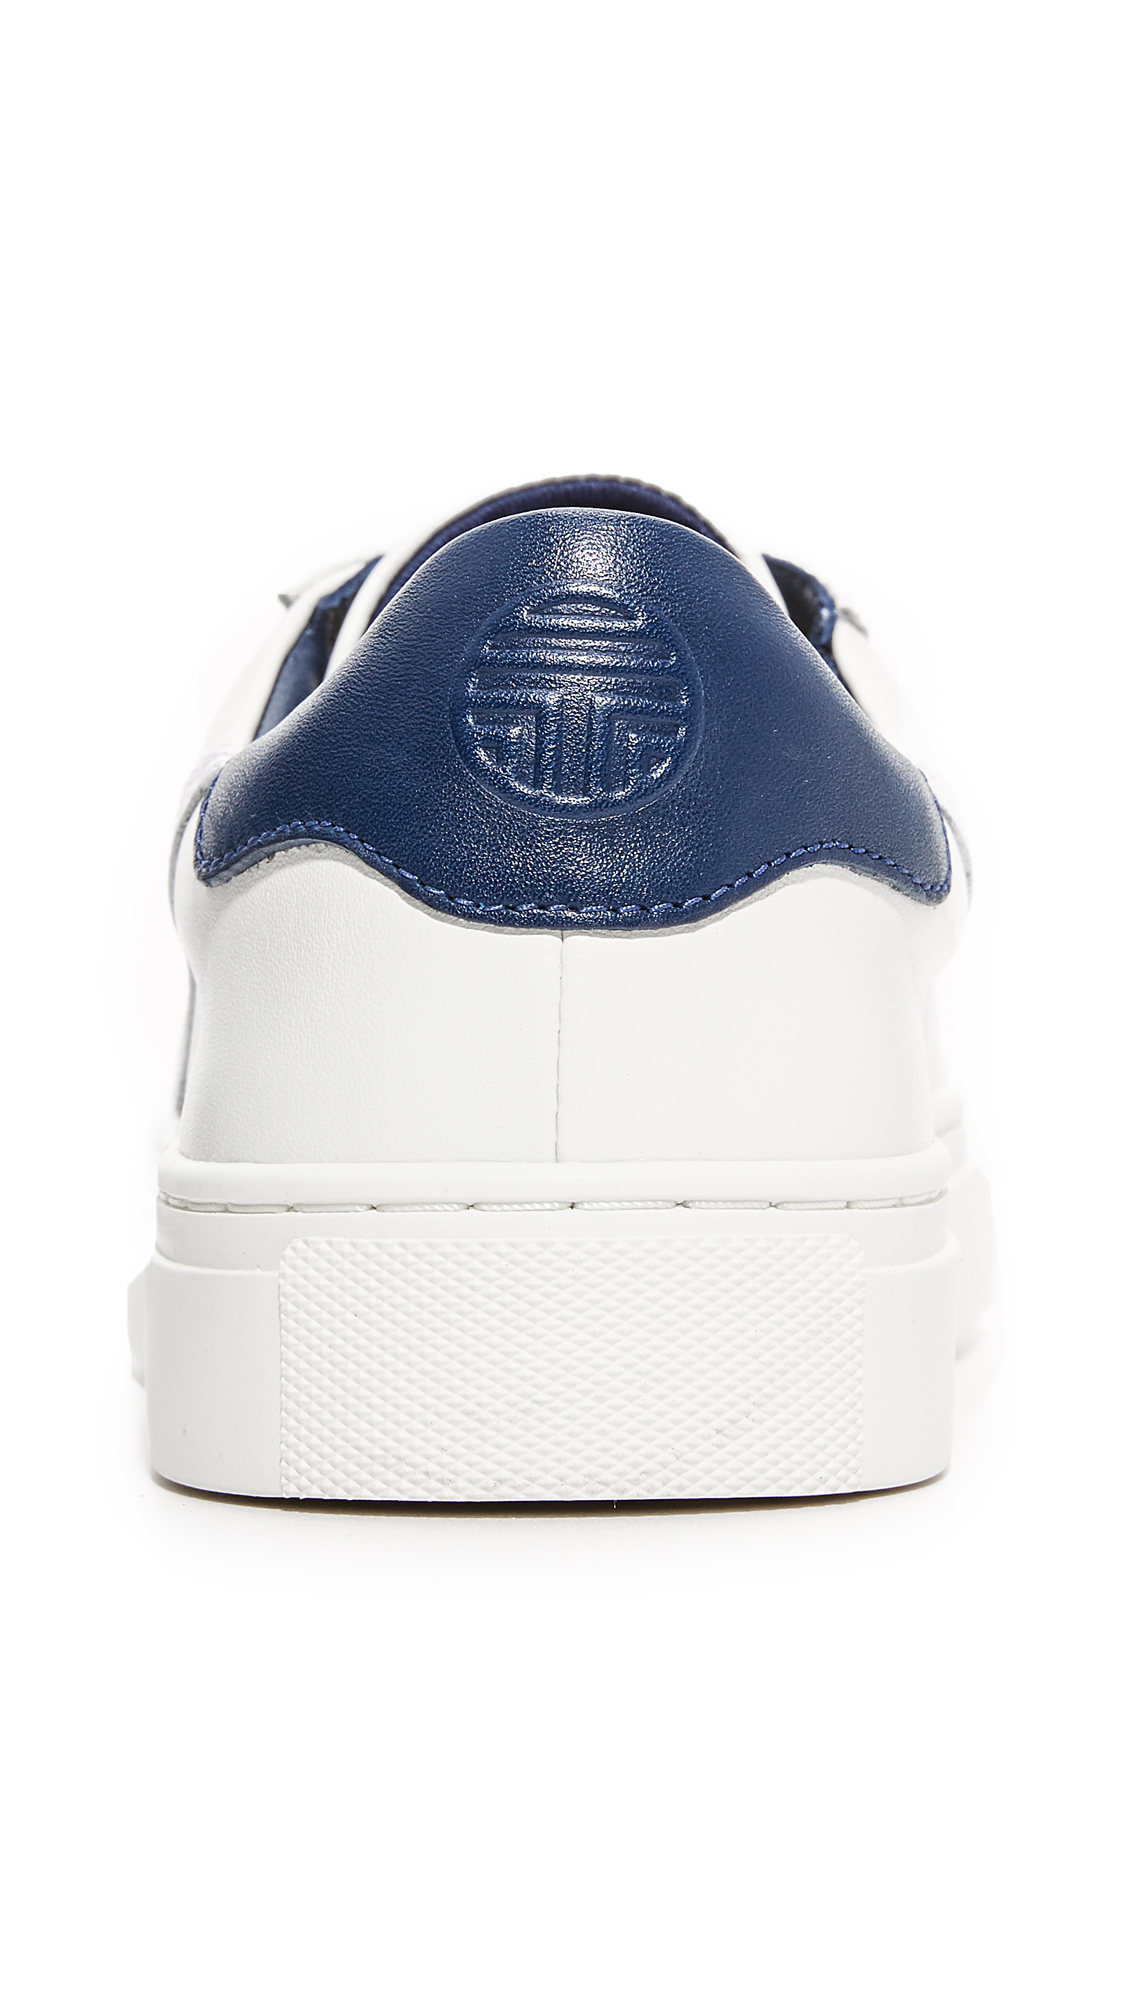 58a5f4ba0559 Tory Burch Tory Sport Chevron Colorblock Sneakers